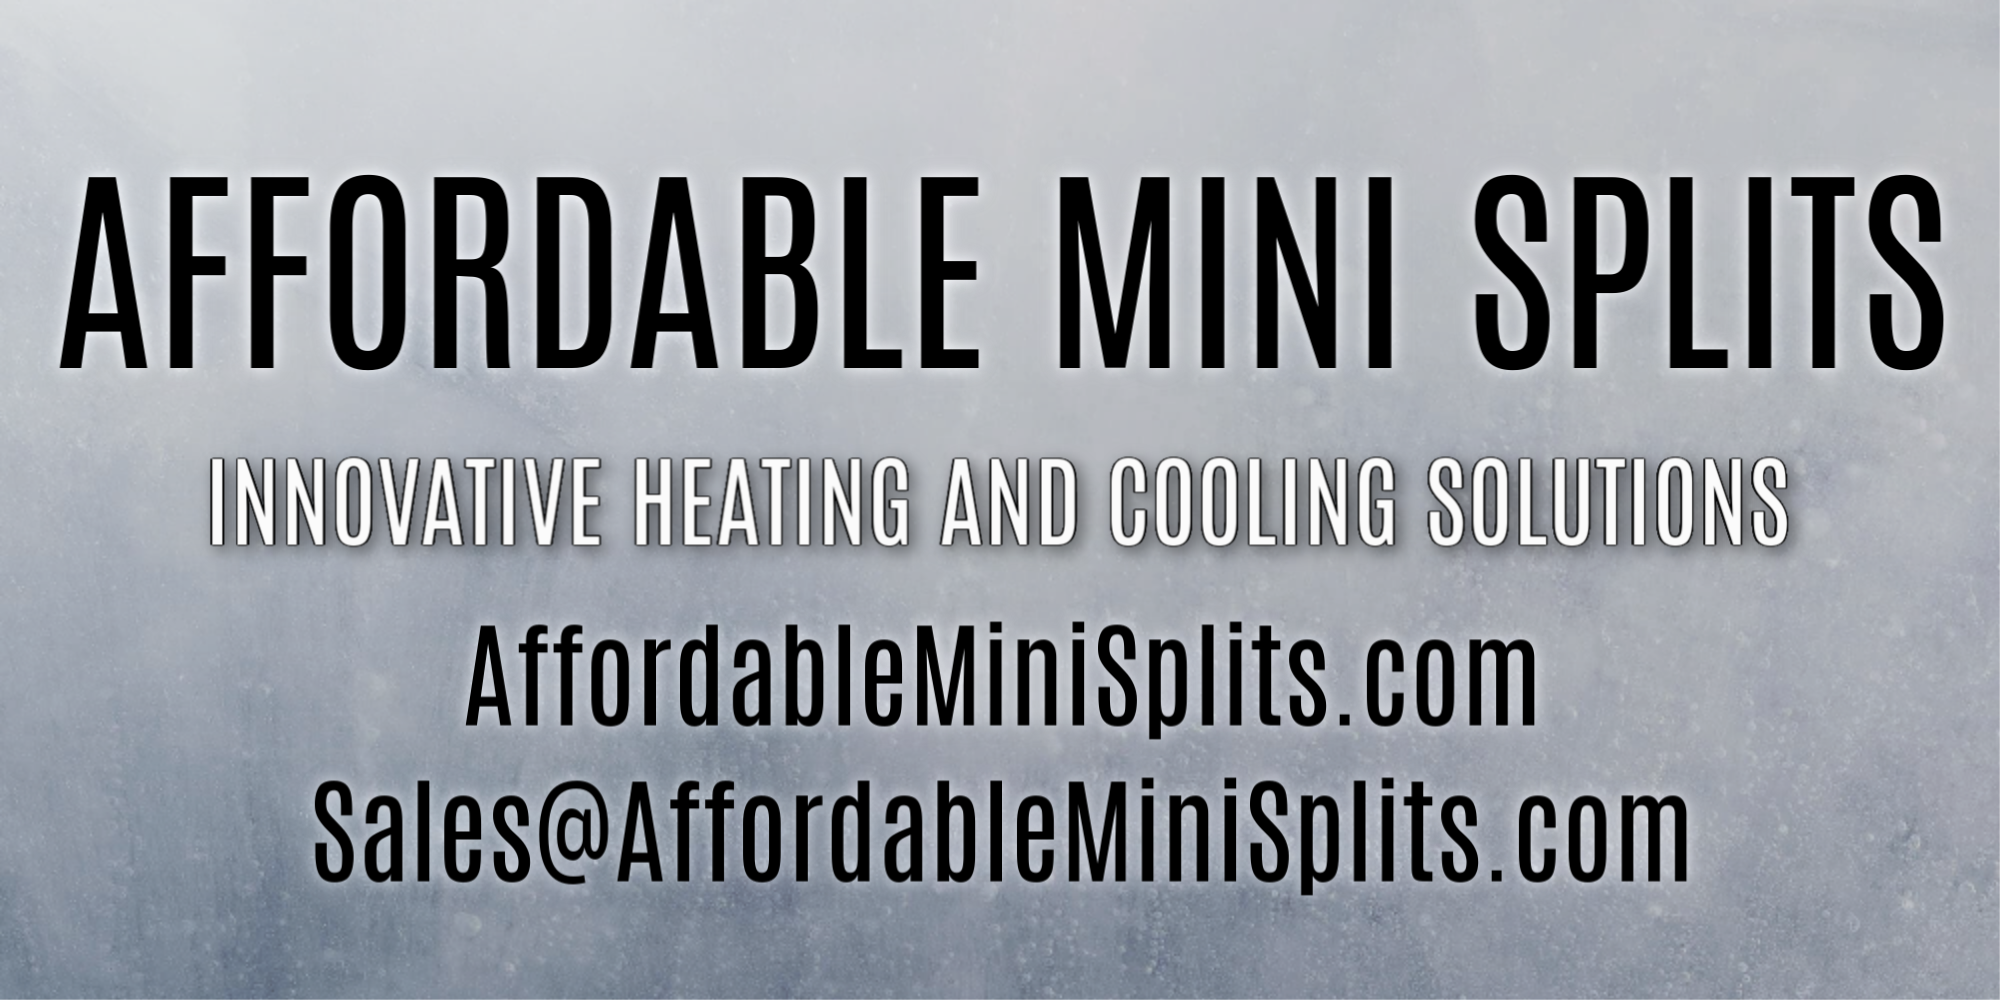 AFFORDABLE MINI SPLITS